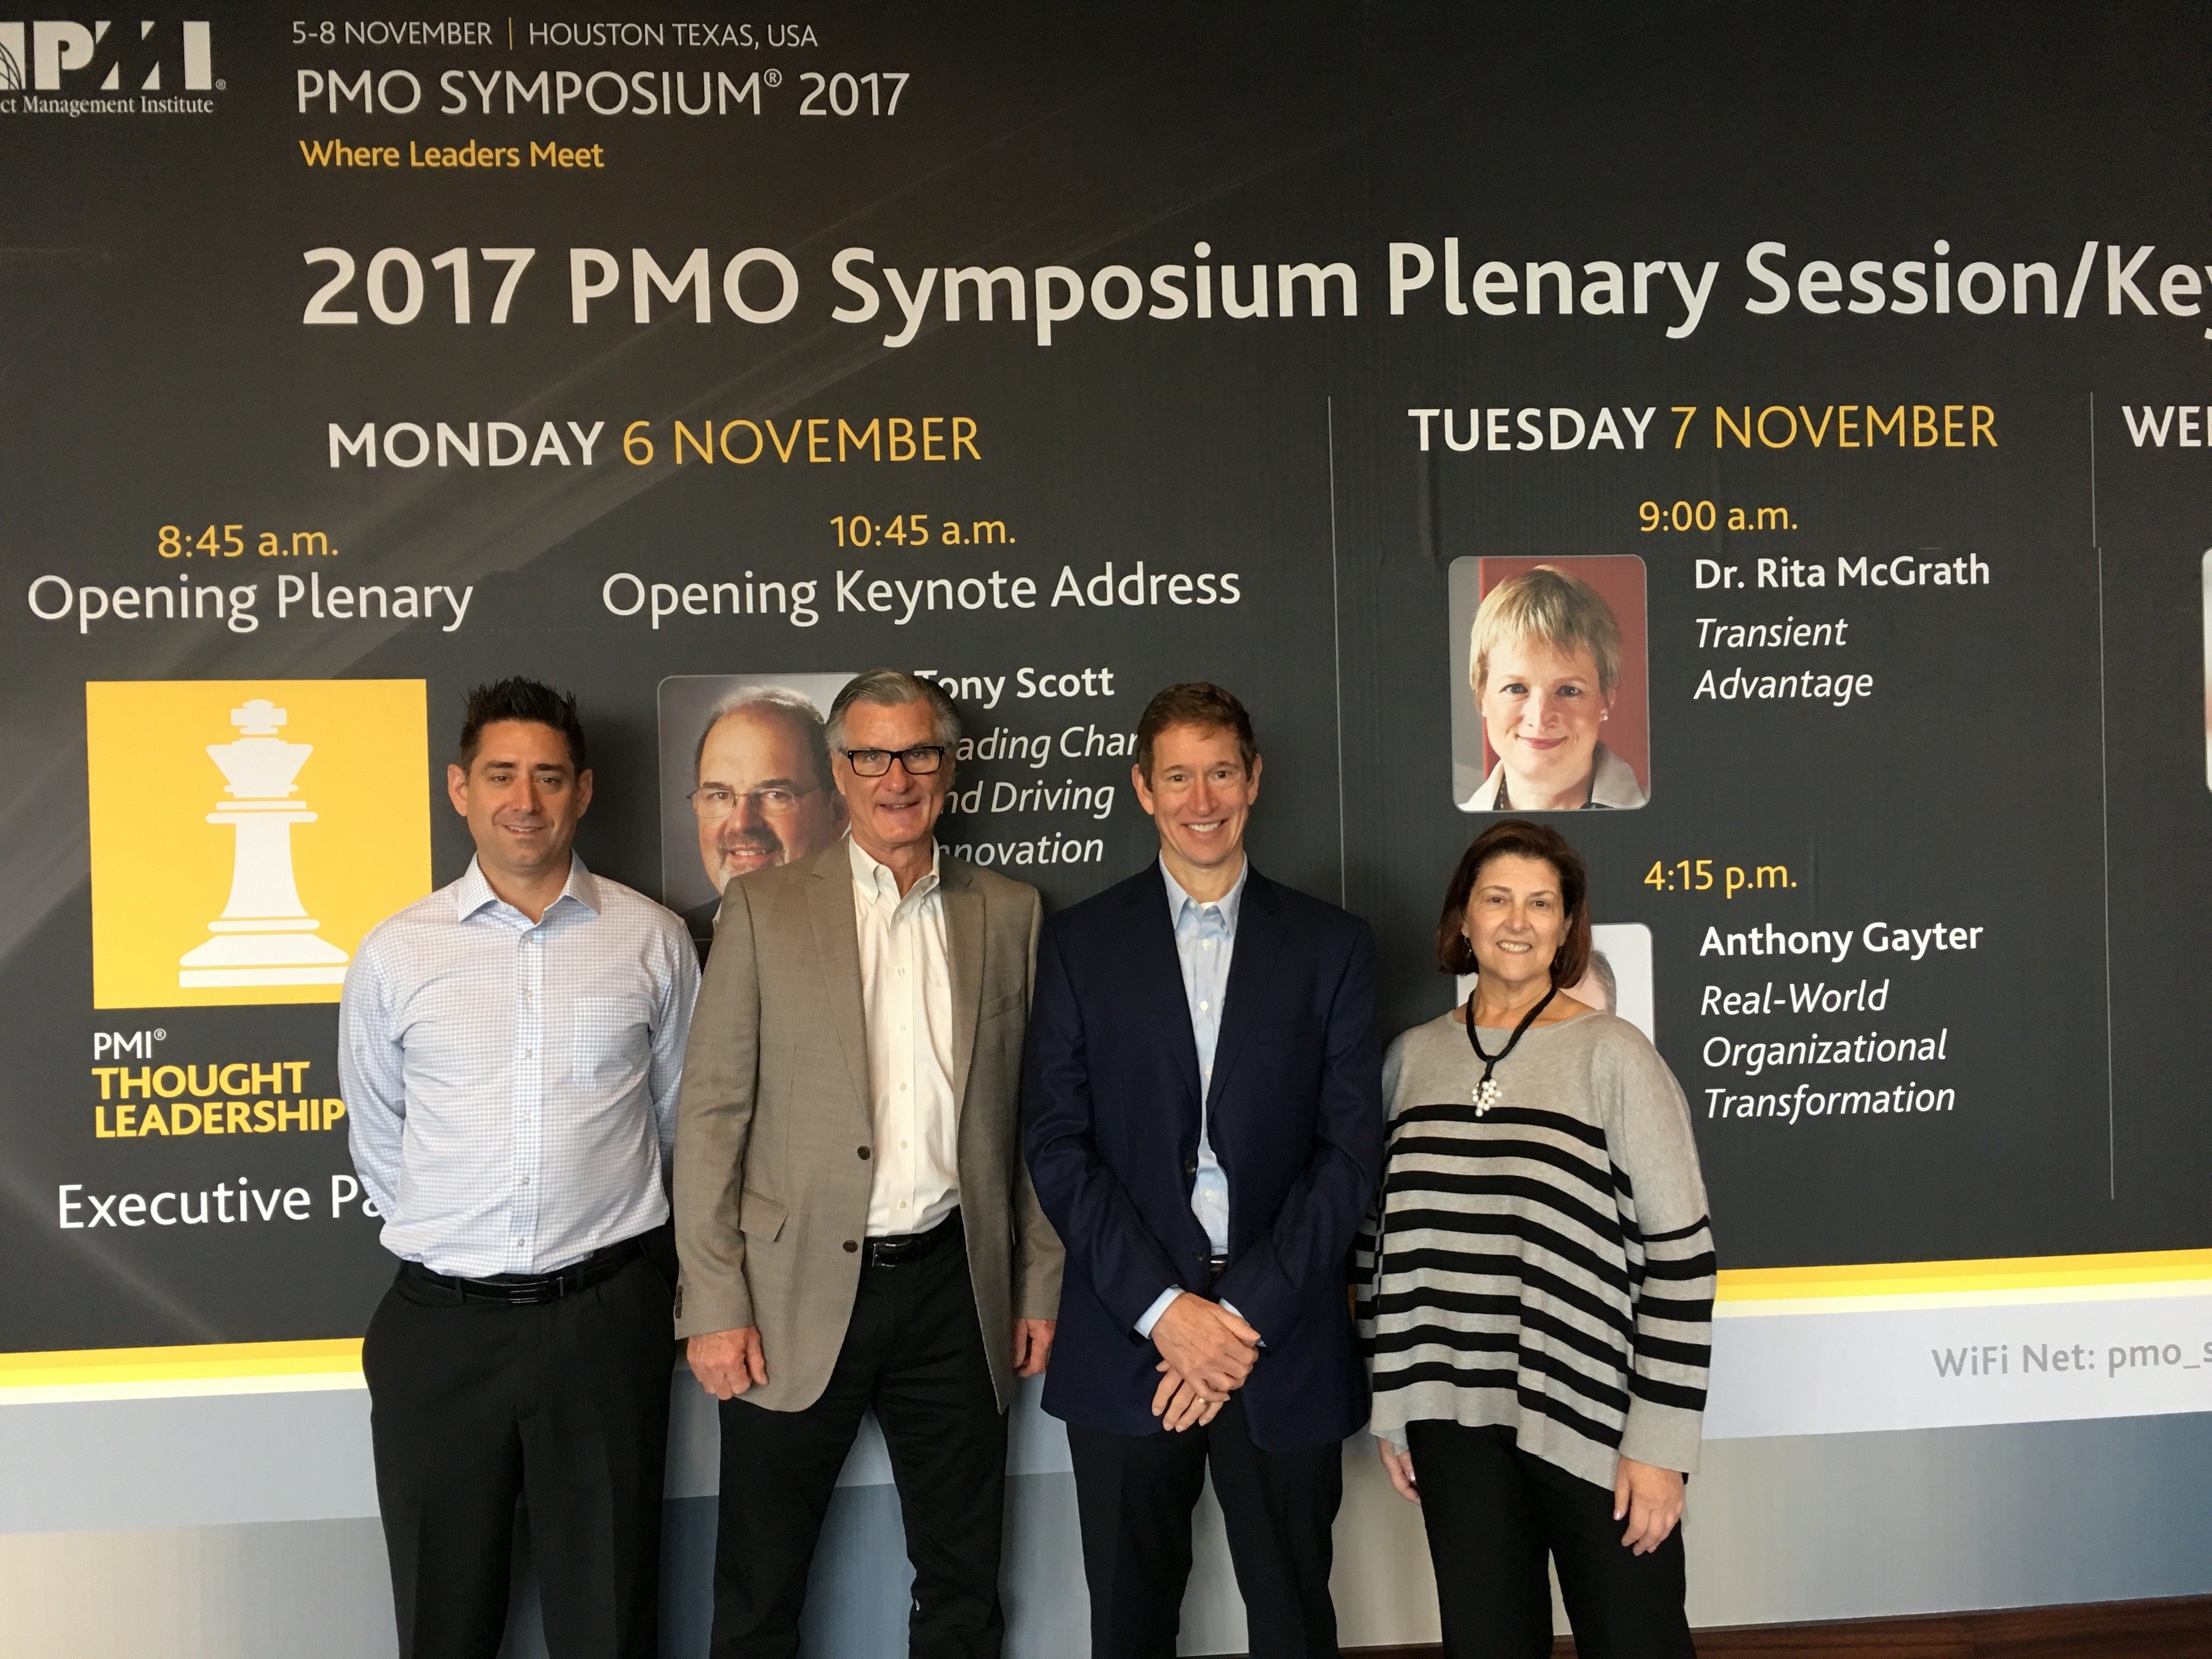 Our PMO Symposium team, l to r: Matt Crawford, Kent Crawford, Bruce Miller, Johanna Mickel